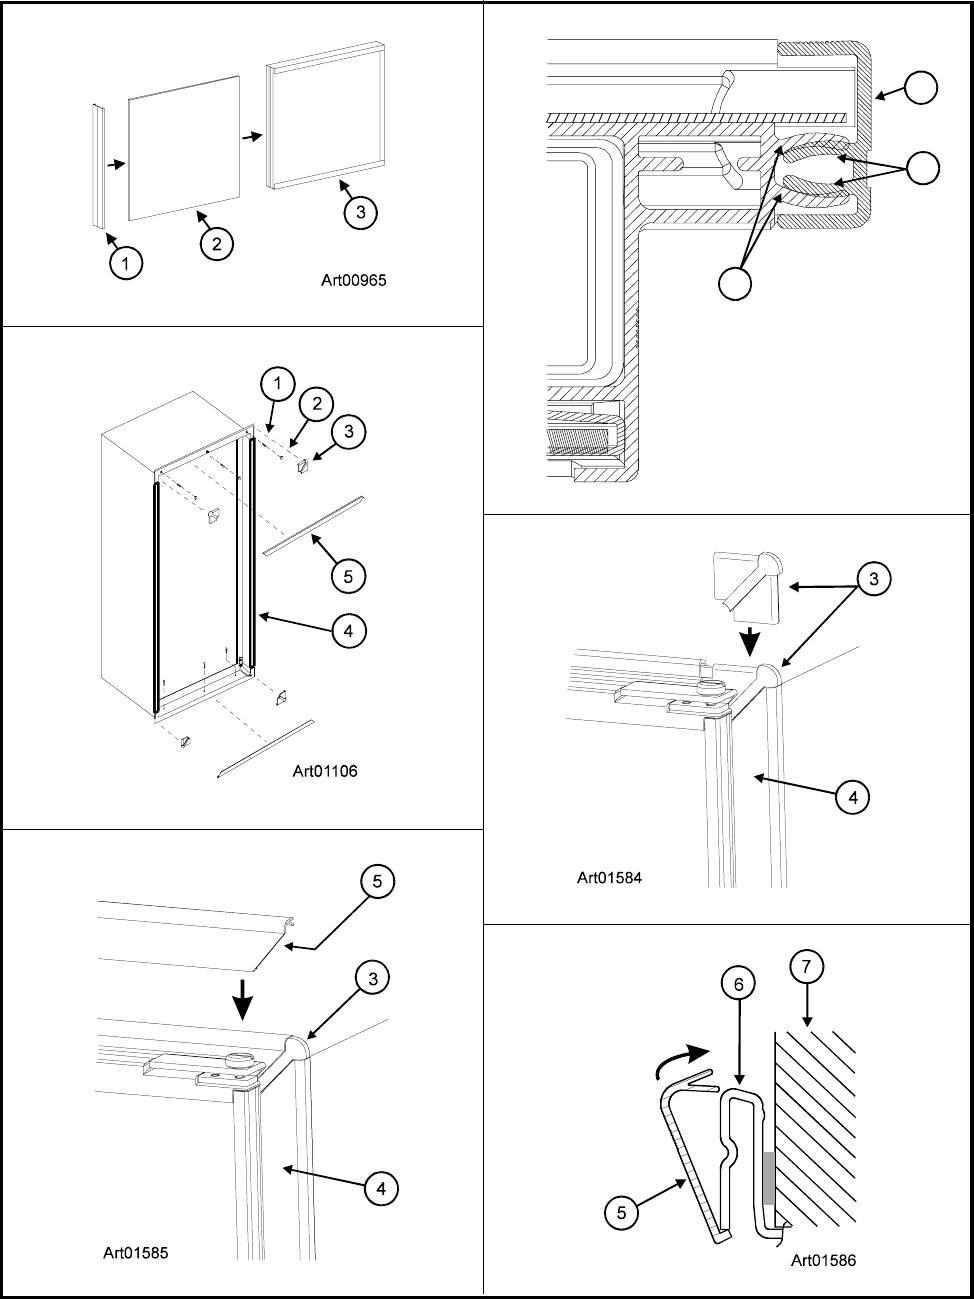 Norcold Refrigerator 120x Users Manual 621824 Patchp65 Ac Dc Schematics 4